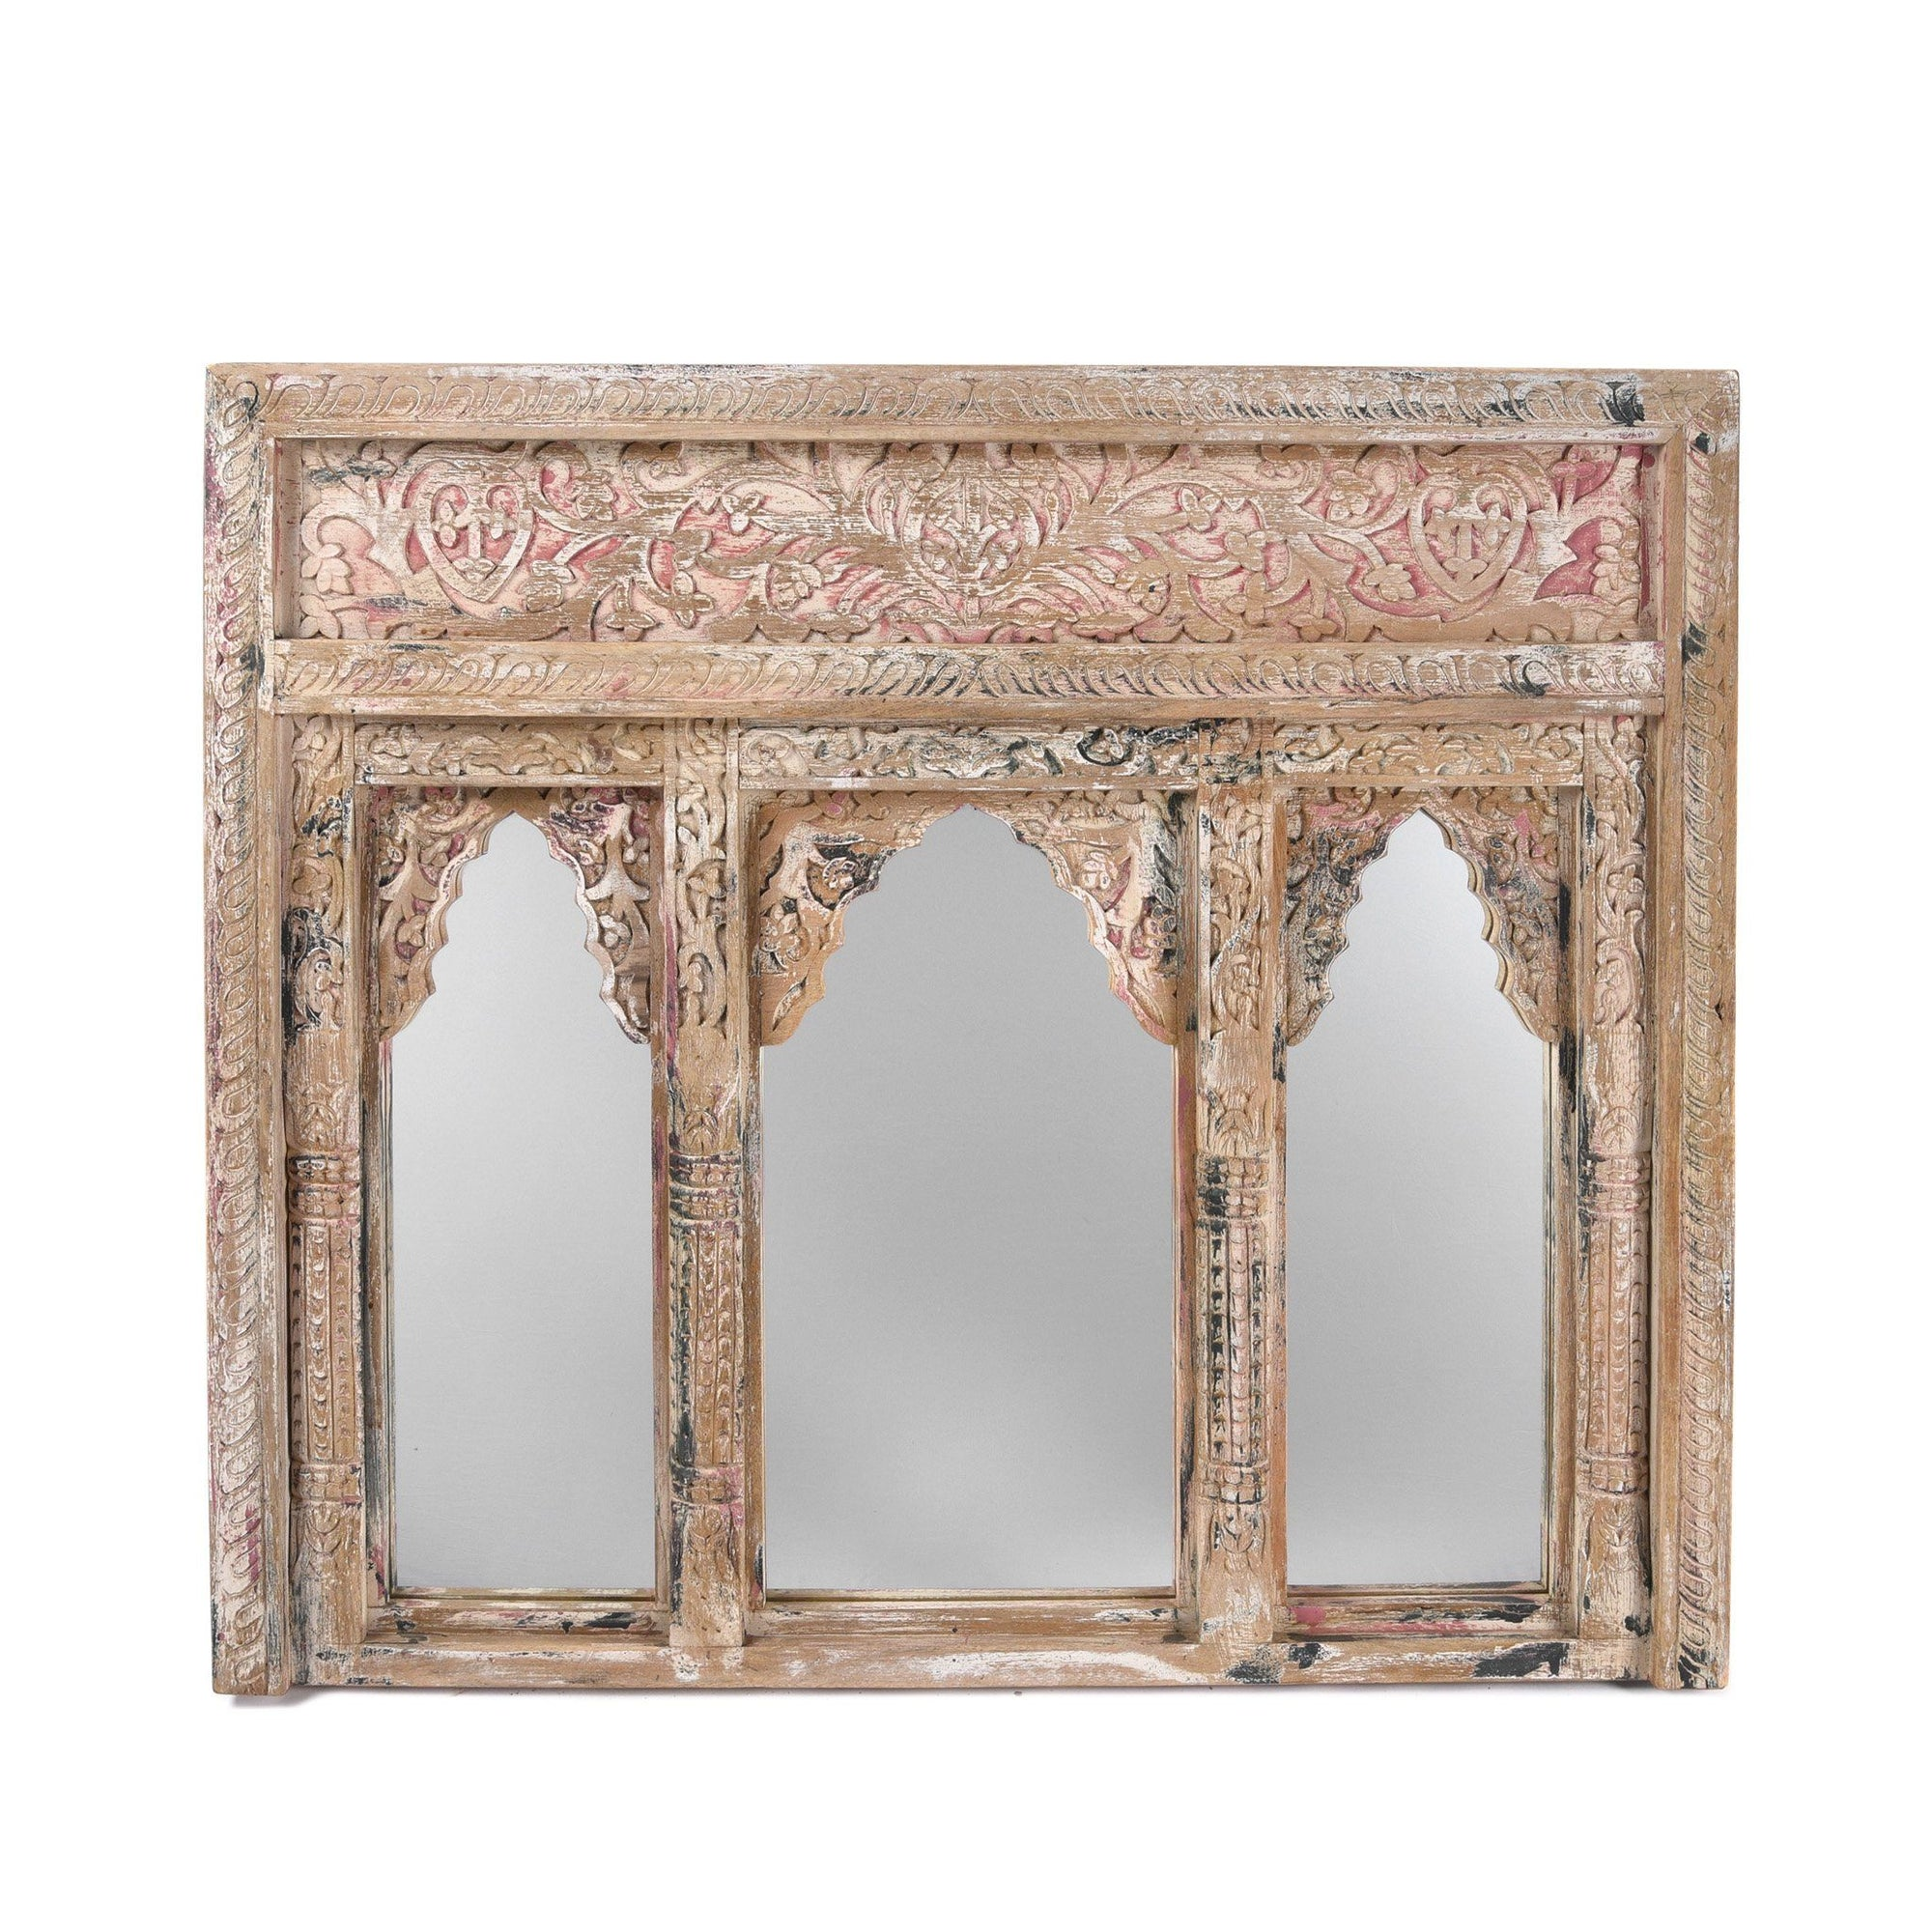 Indian Mango Wood Triple Mirror - Rajasthani Style